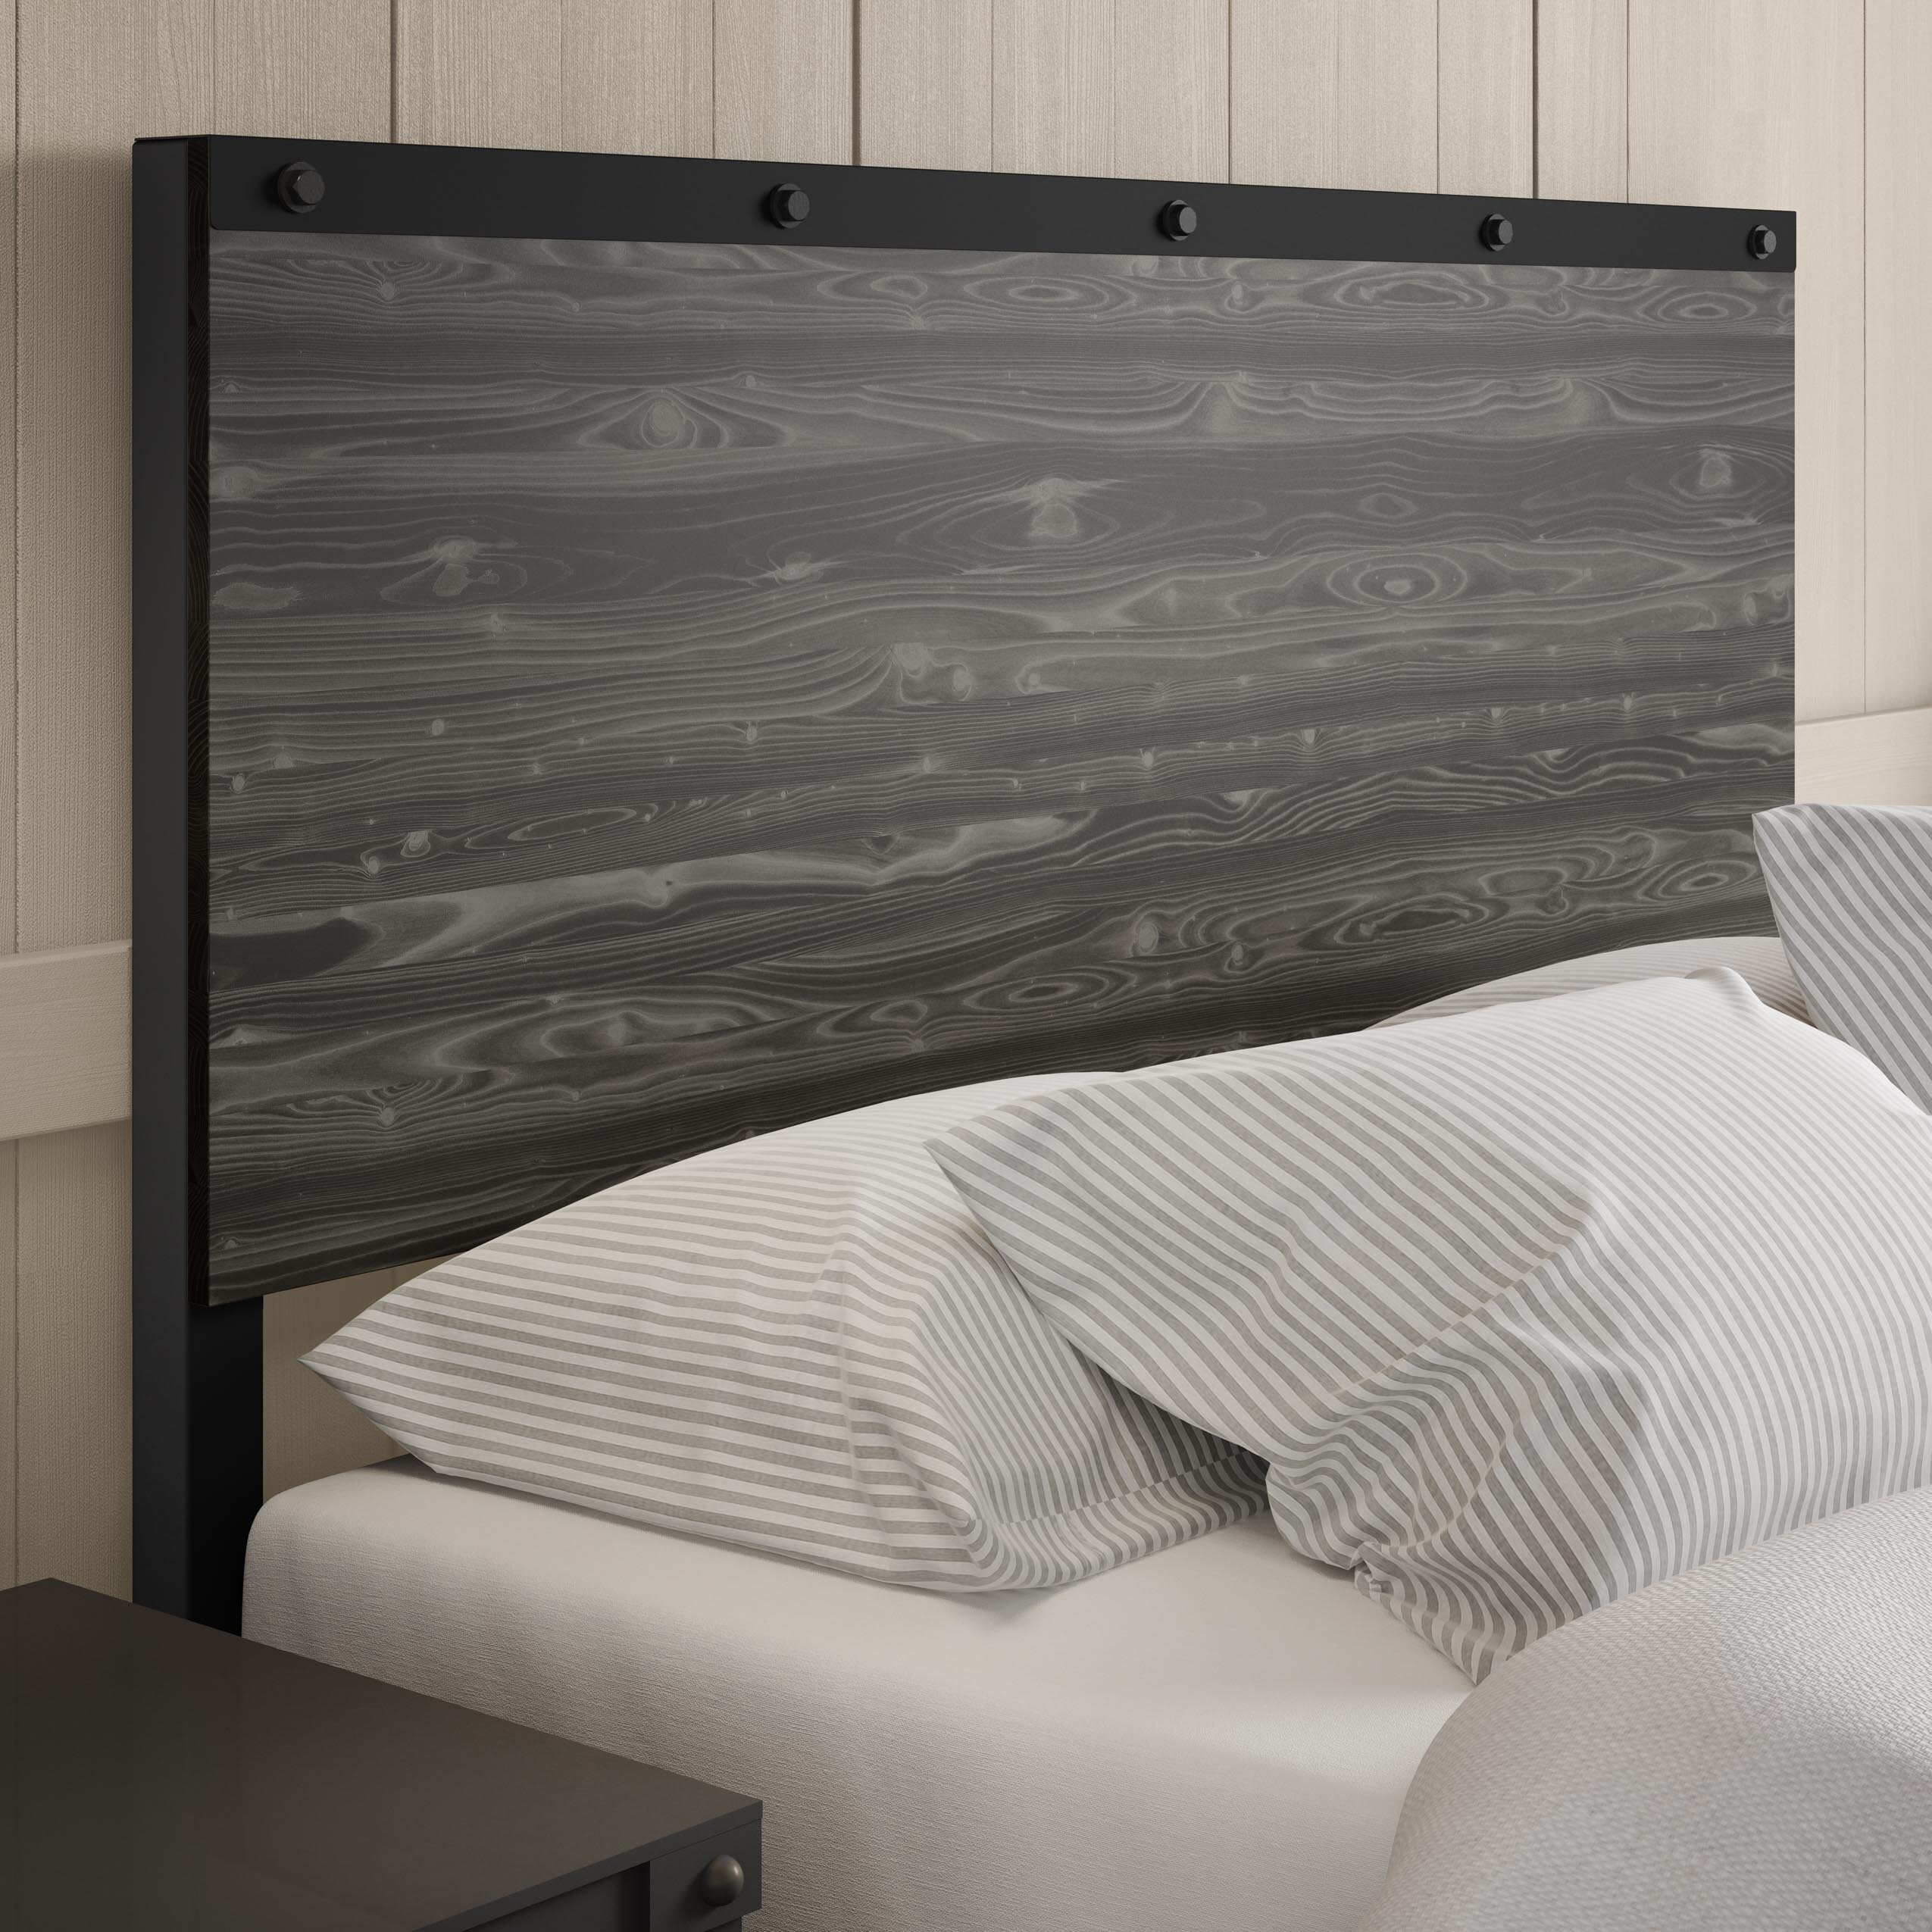 headboards make style with do covered and reupholstering large upholstered head black platform cottage king of plain diy canada in linen reupholster full good uncategorized headboard it slipcover re pictures beds leather fancy for cane size incredible upholster yourself board